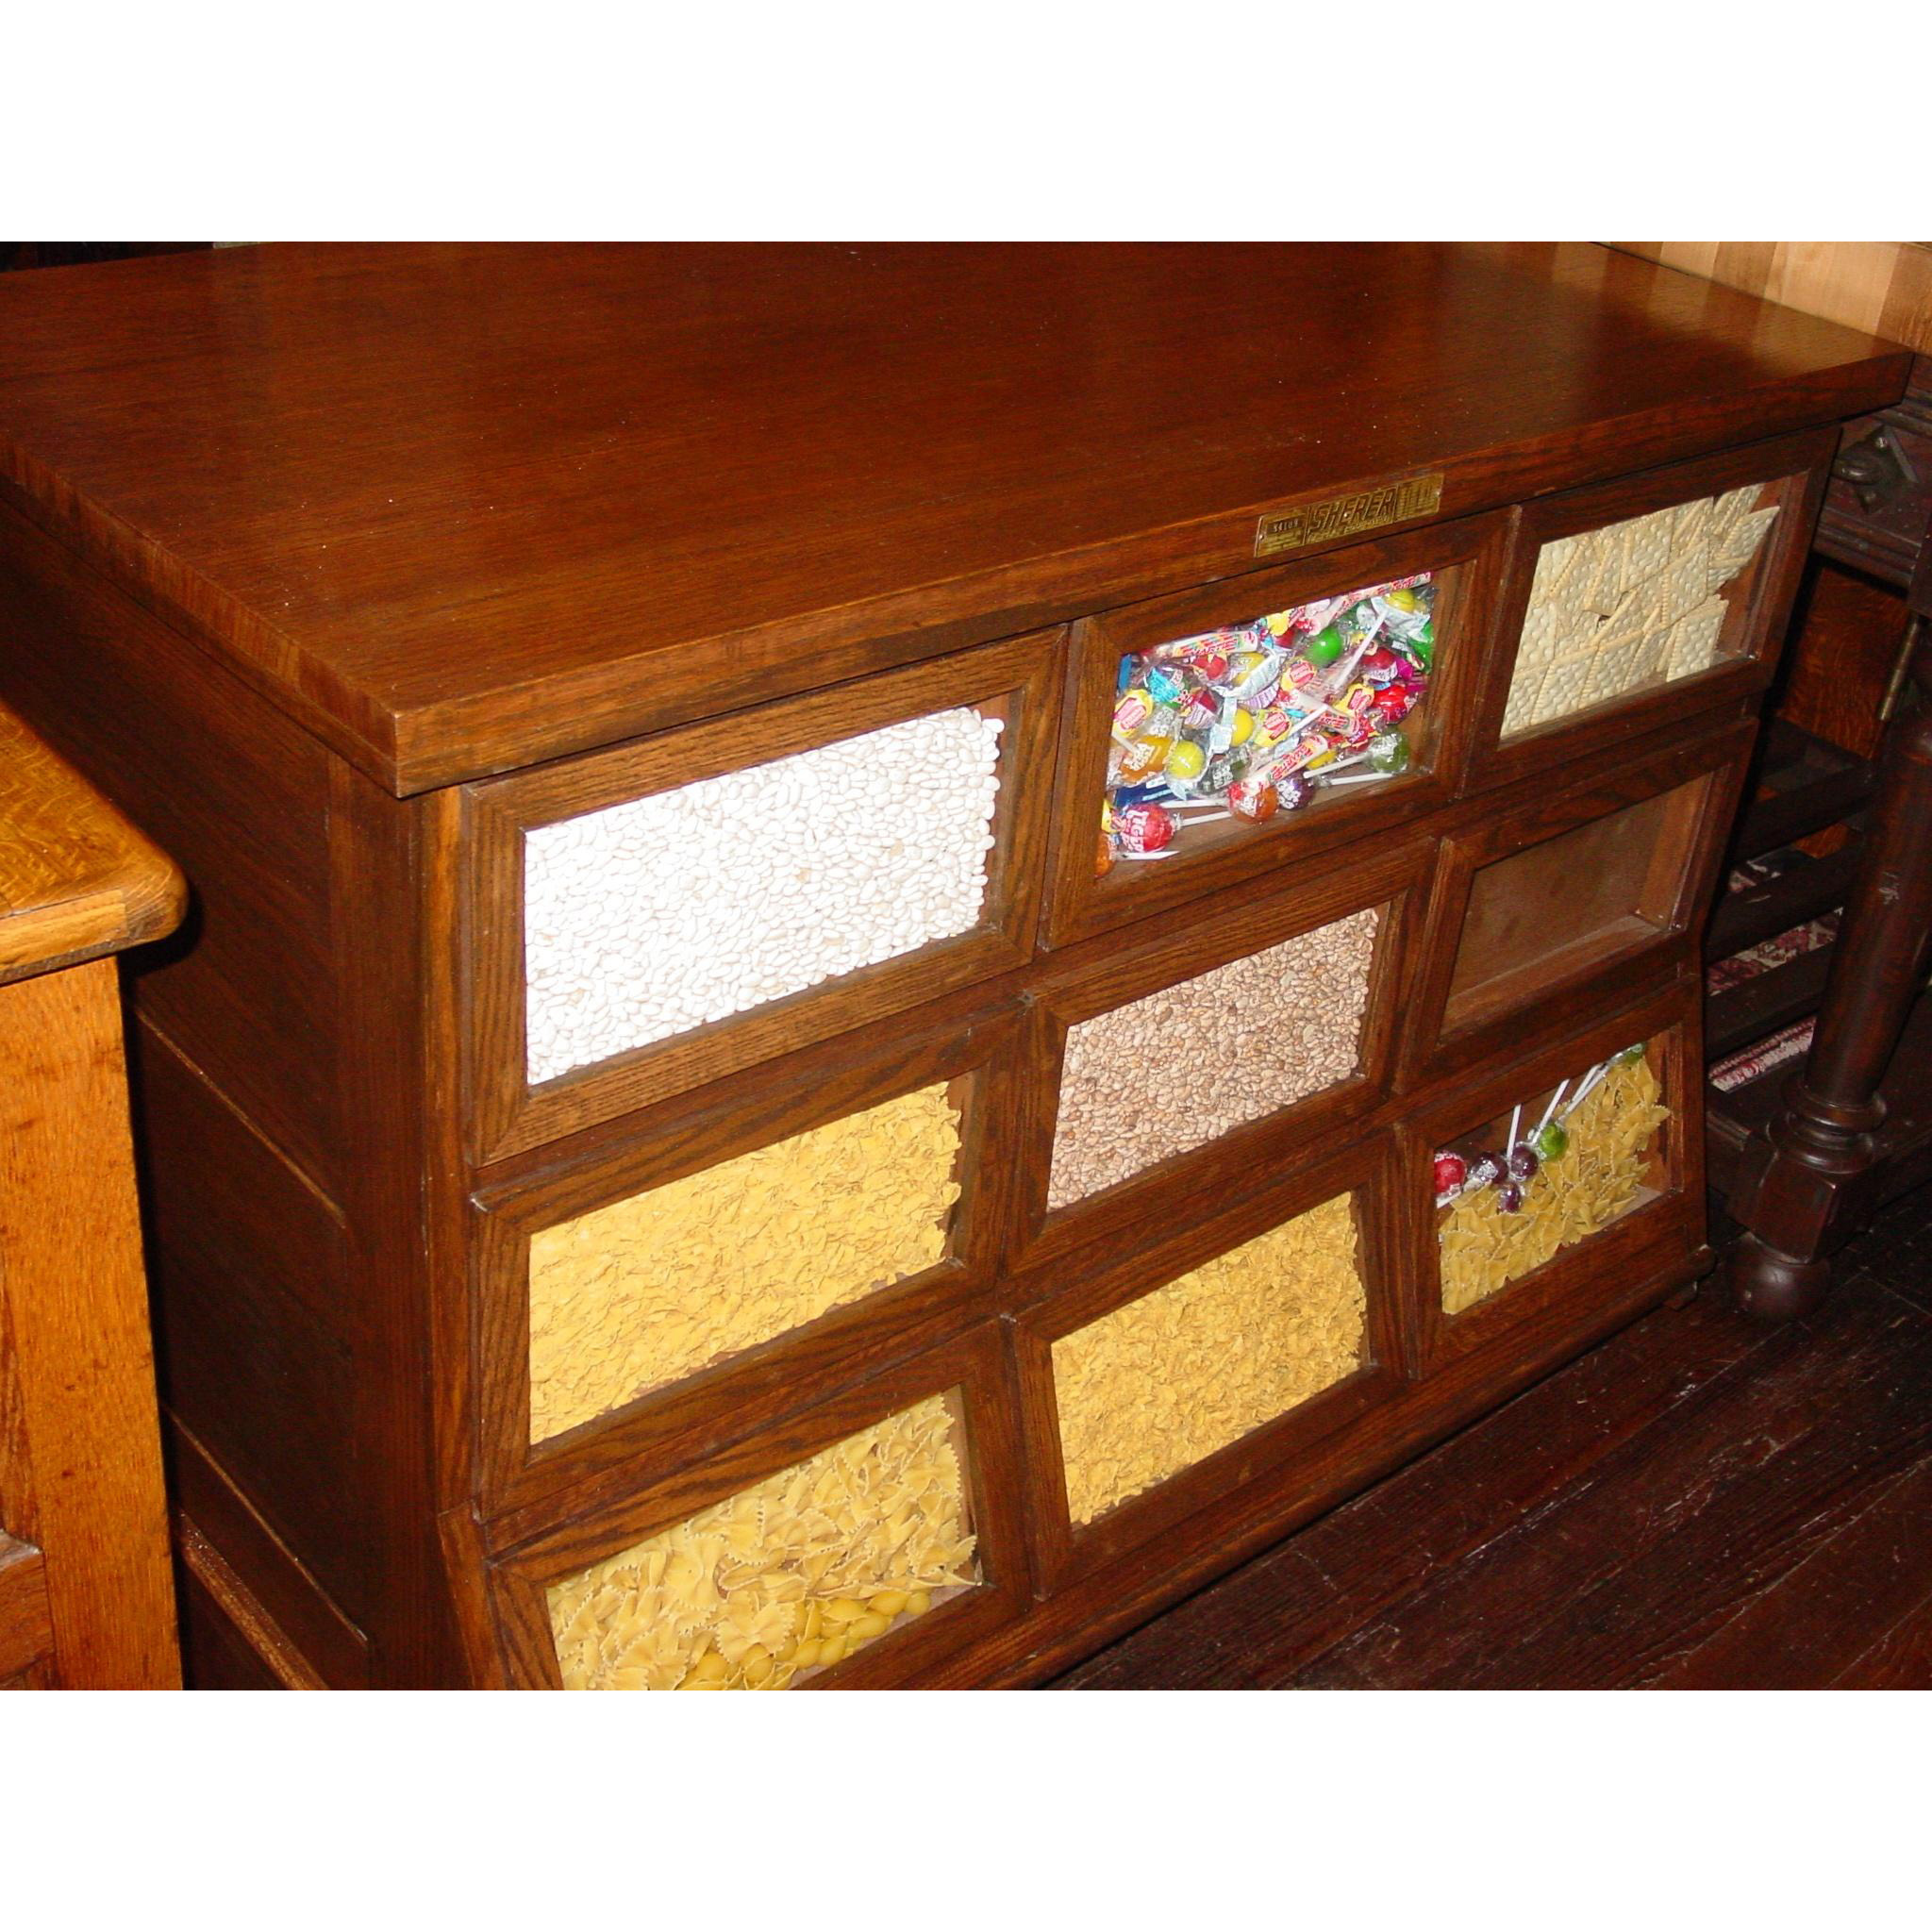 SHERER 9 drawer oak seed bean cabinet counter